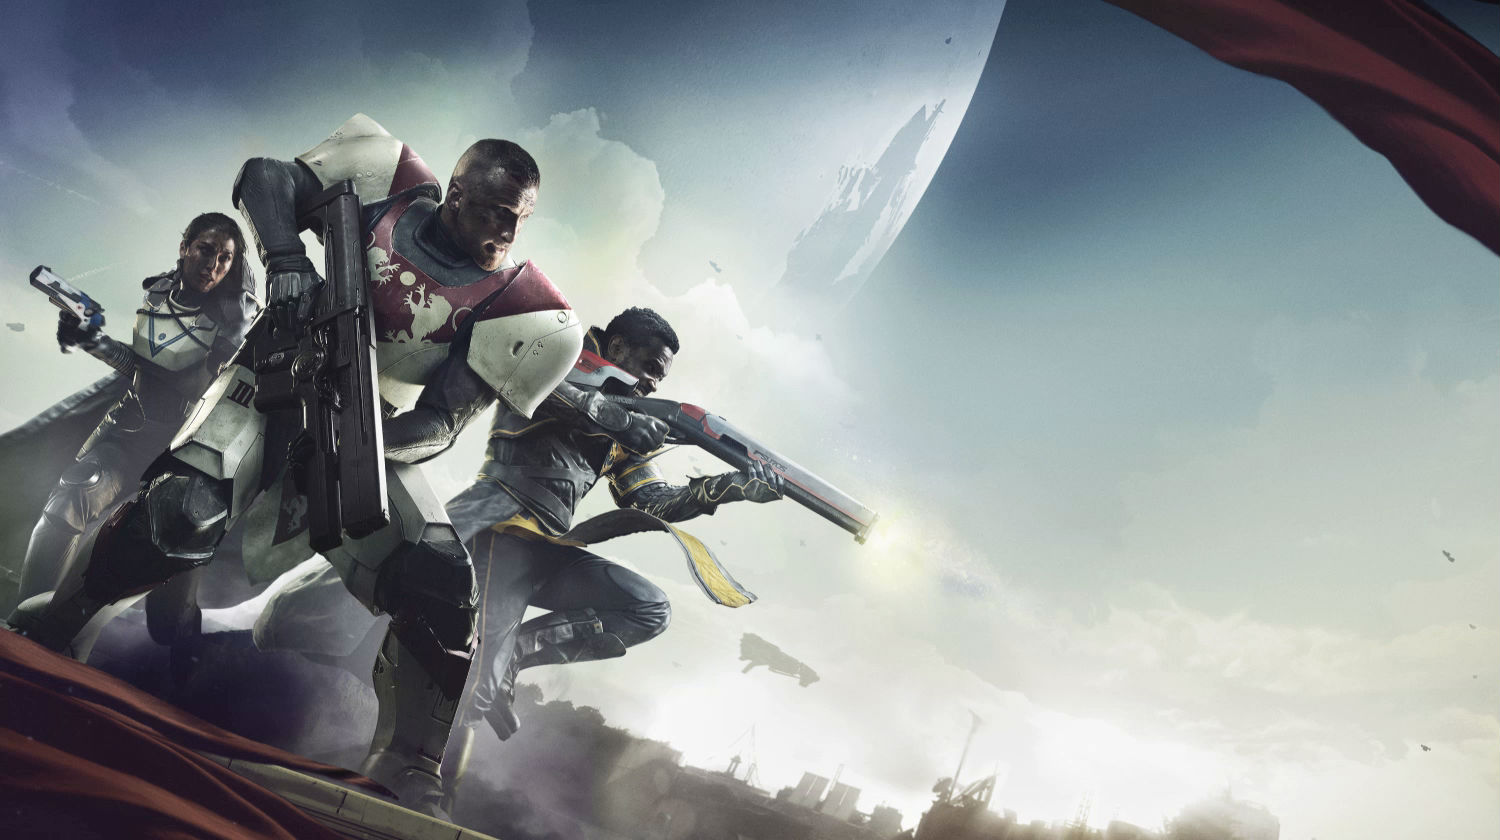 Destiny 2 is free right now as part of the September PlayStation Plus monthly lineup screenshot